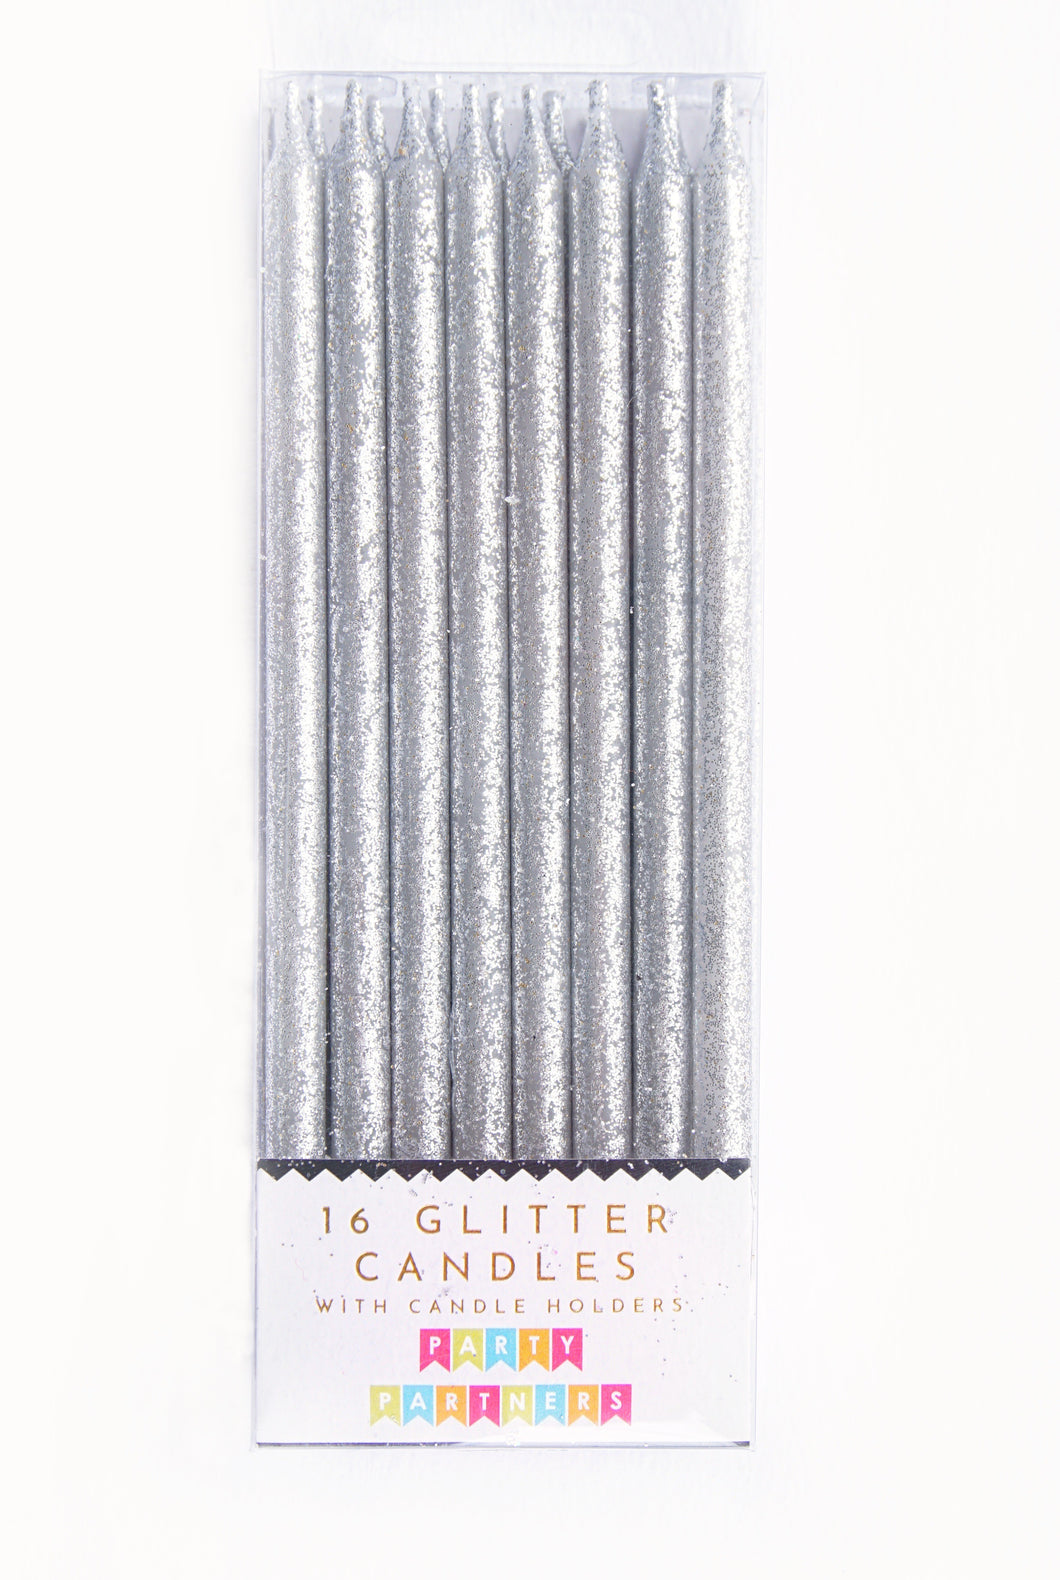 Silver Tall Glitter 16 Candle Set Party Partners